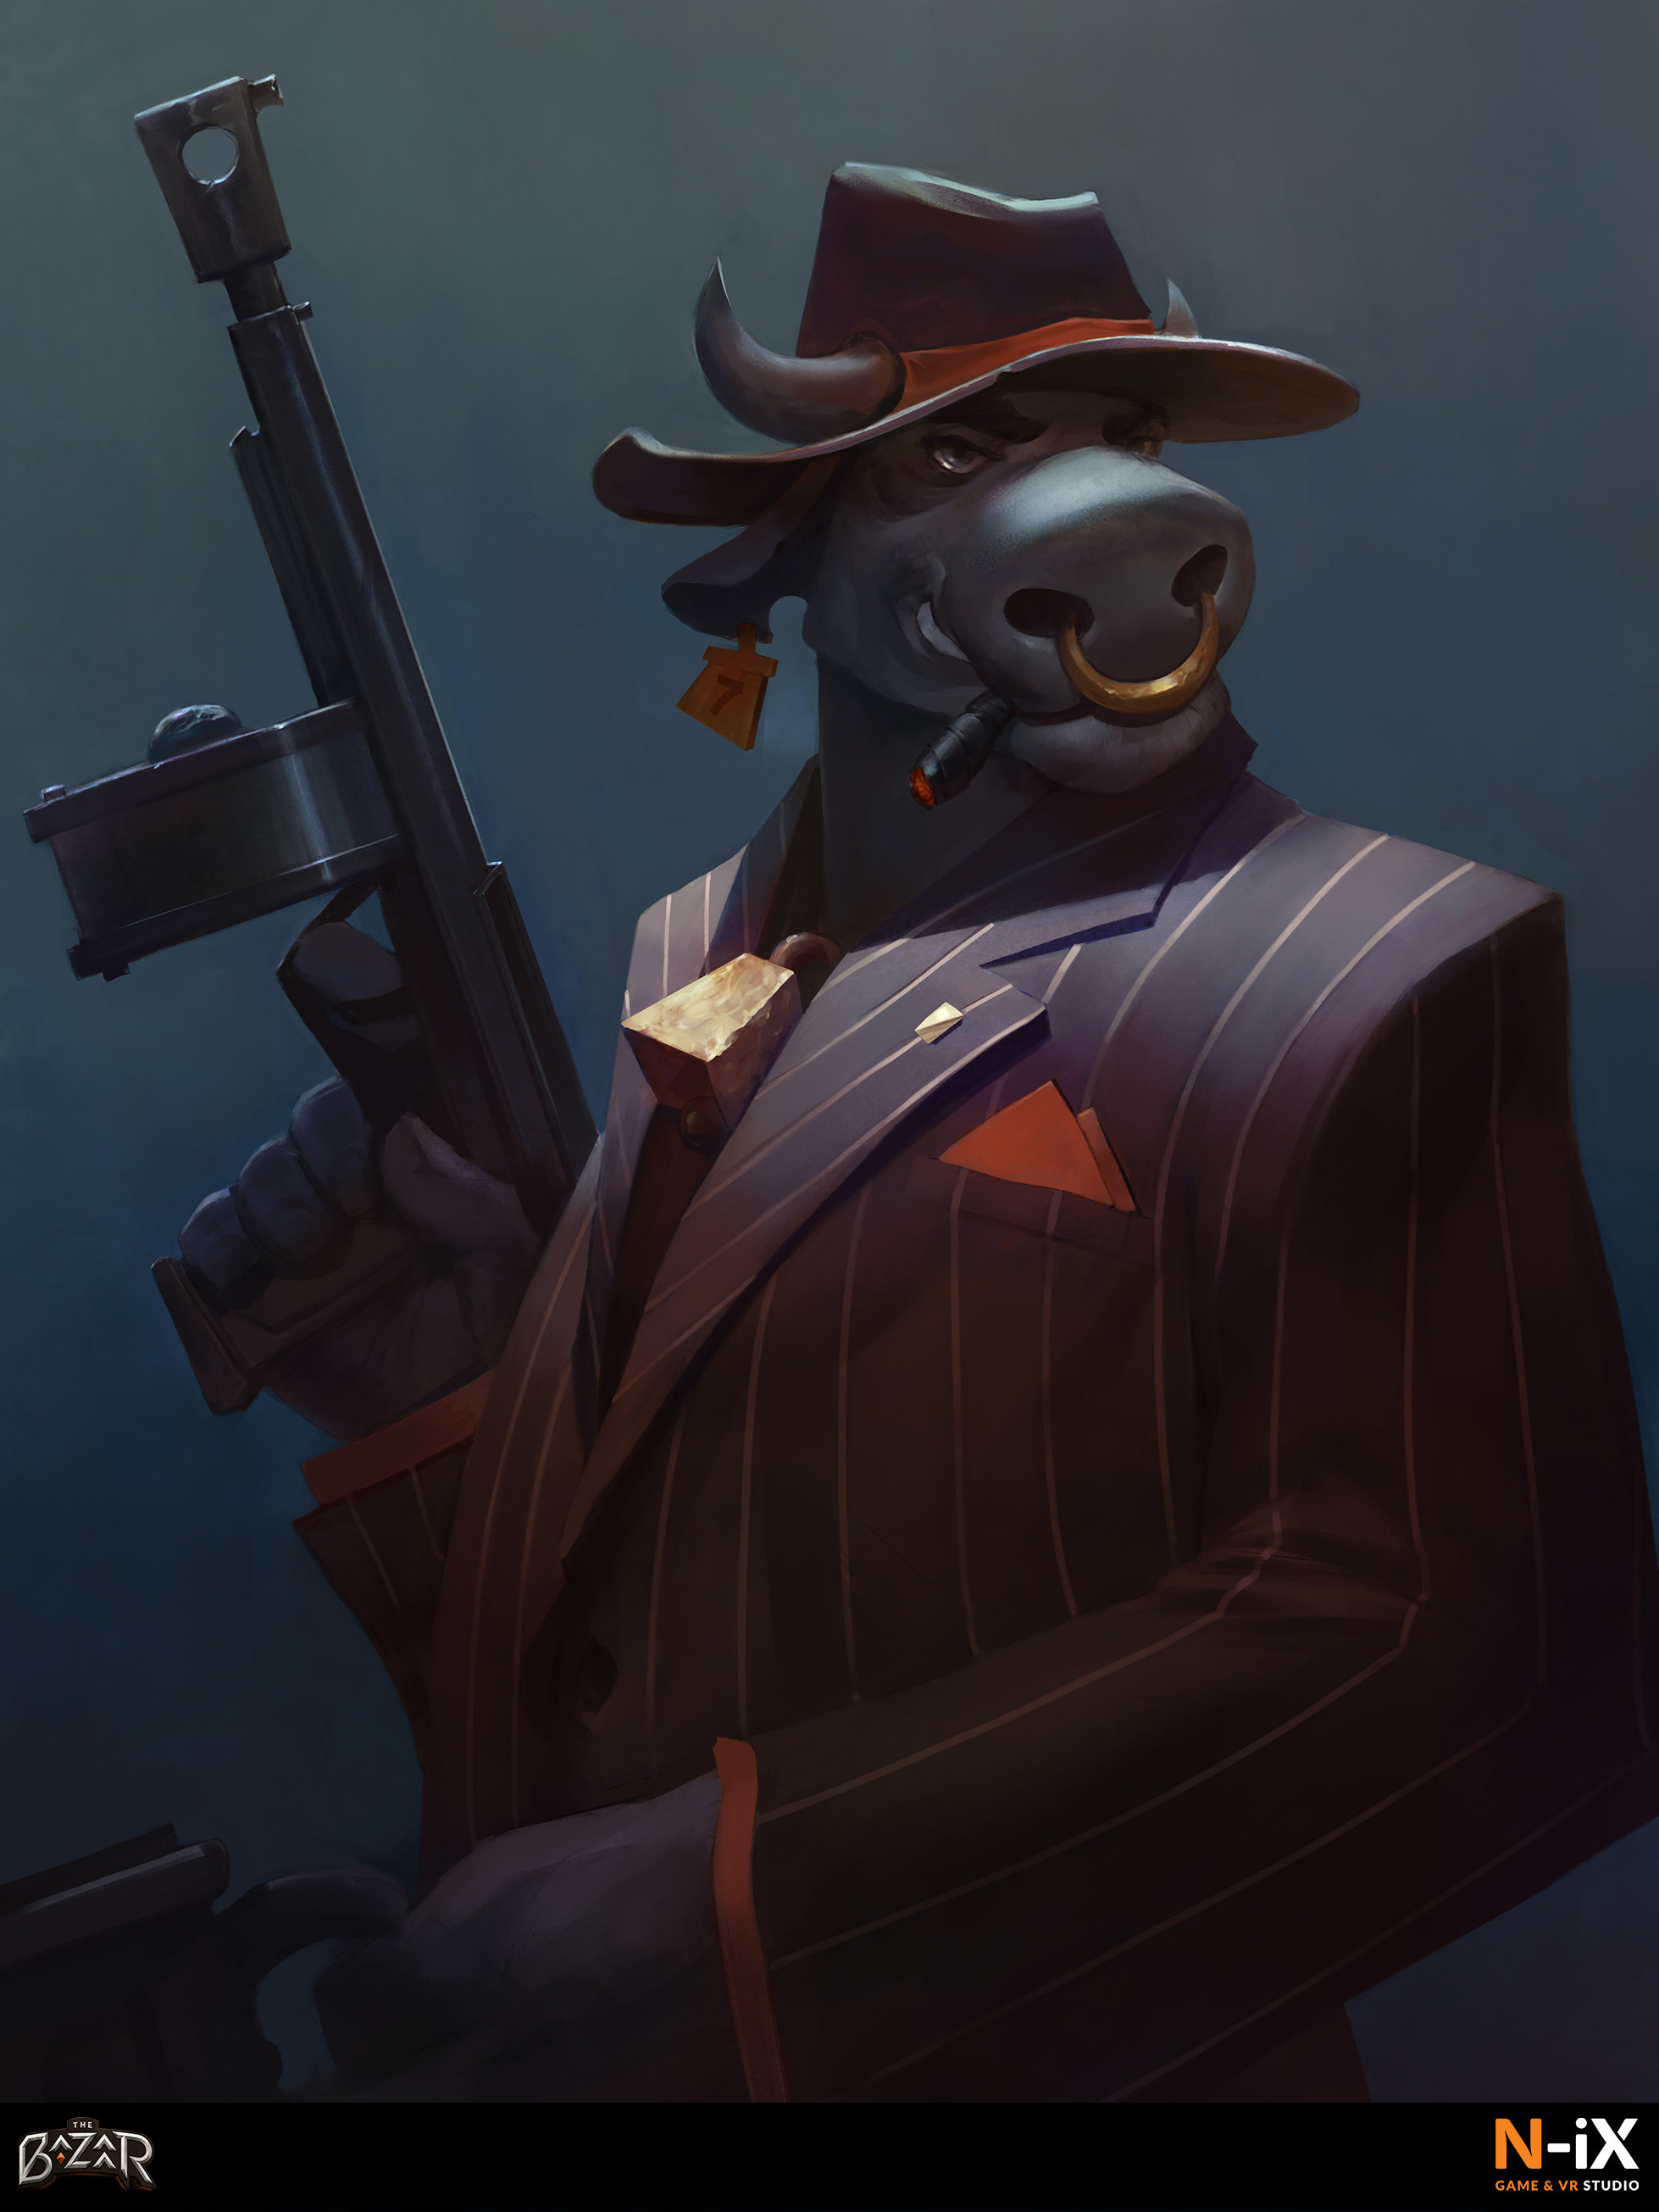 The Bazaar